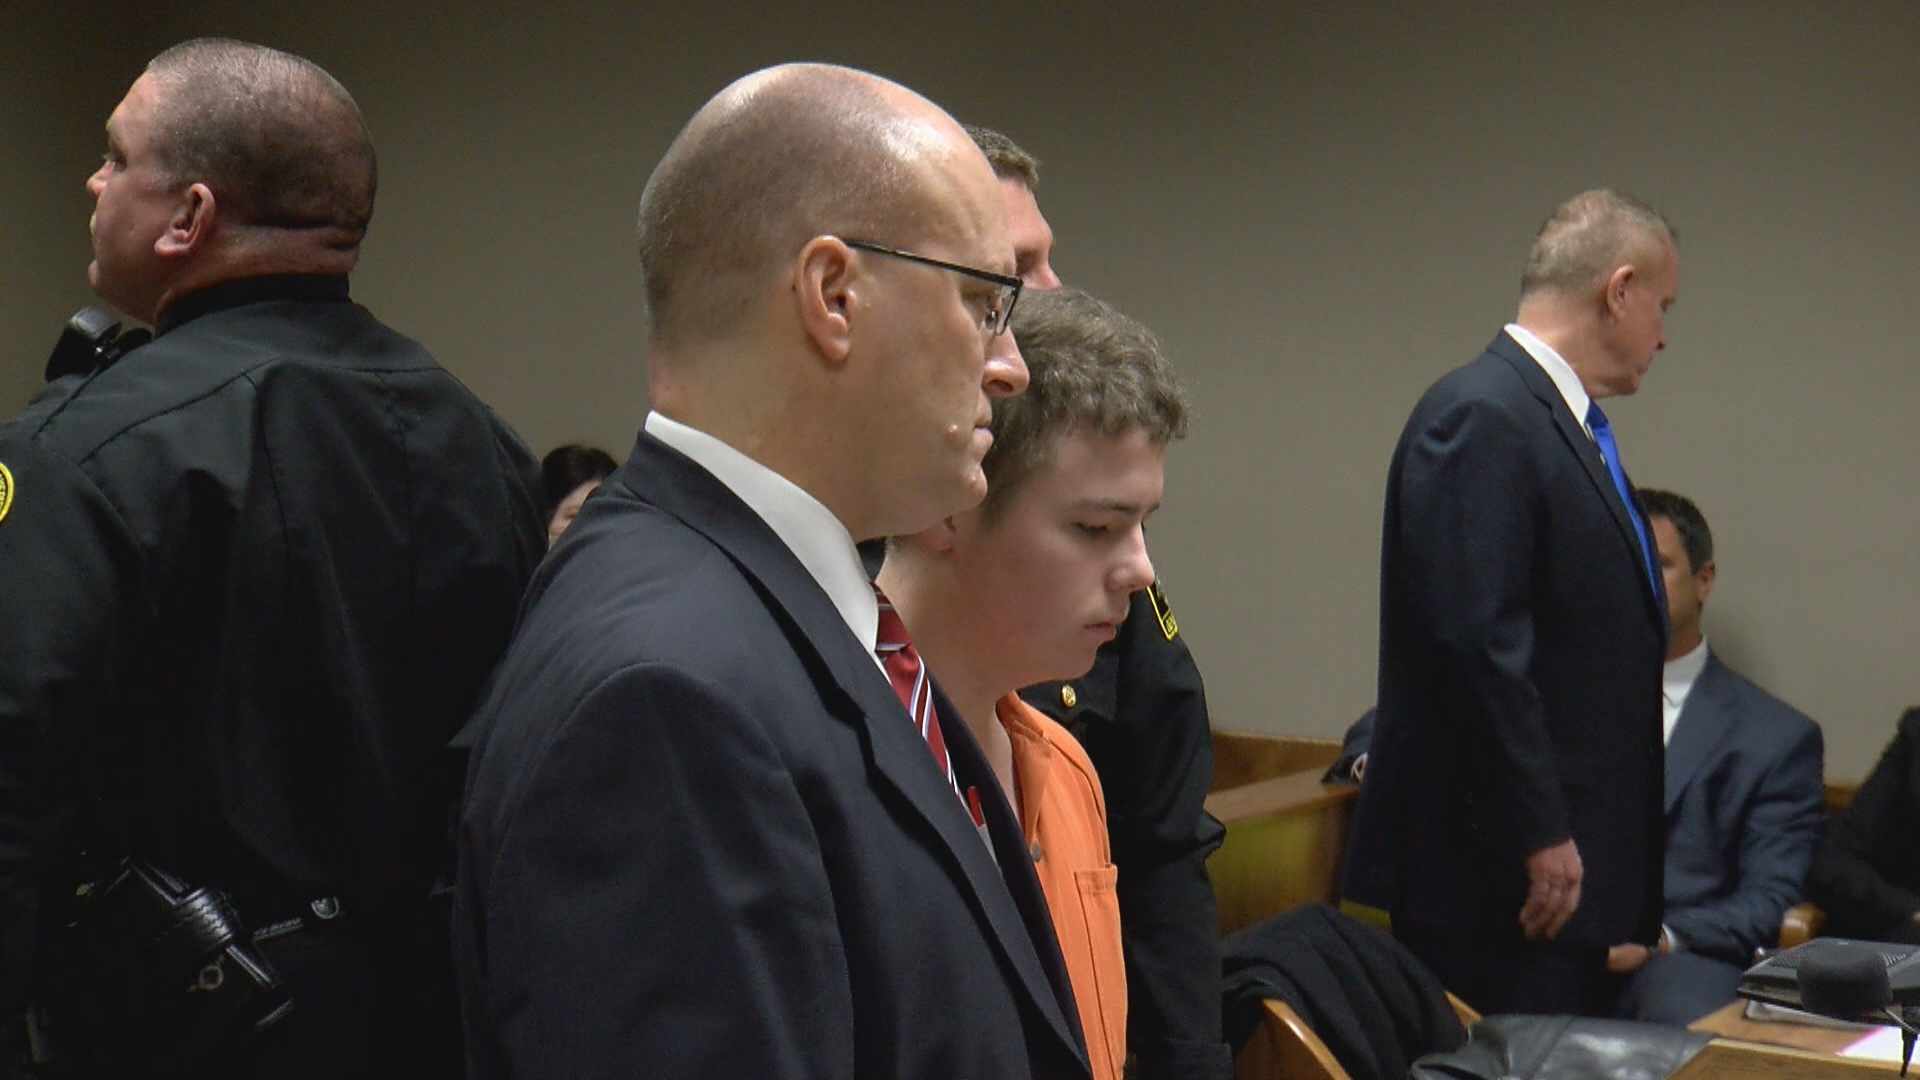 A state evaluation found them competent, but their lawyers want another exam by a different expert. A Flint-area judge approved the request Thursday for Kyle Anger (pictured), Mark Sekelsky and Trevor Gray.{&amp;nbsp;}(Photo: WEYI/WSMH)<p></p>